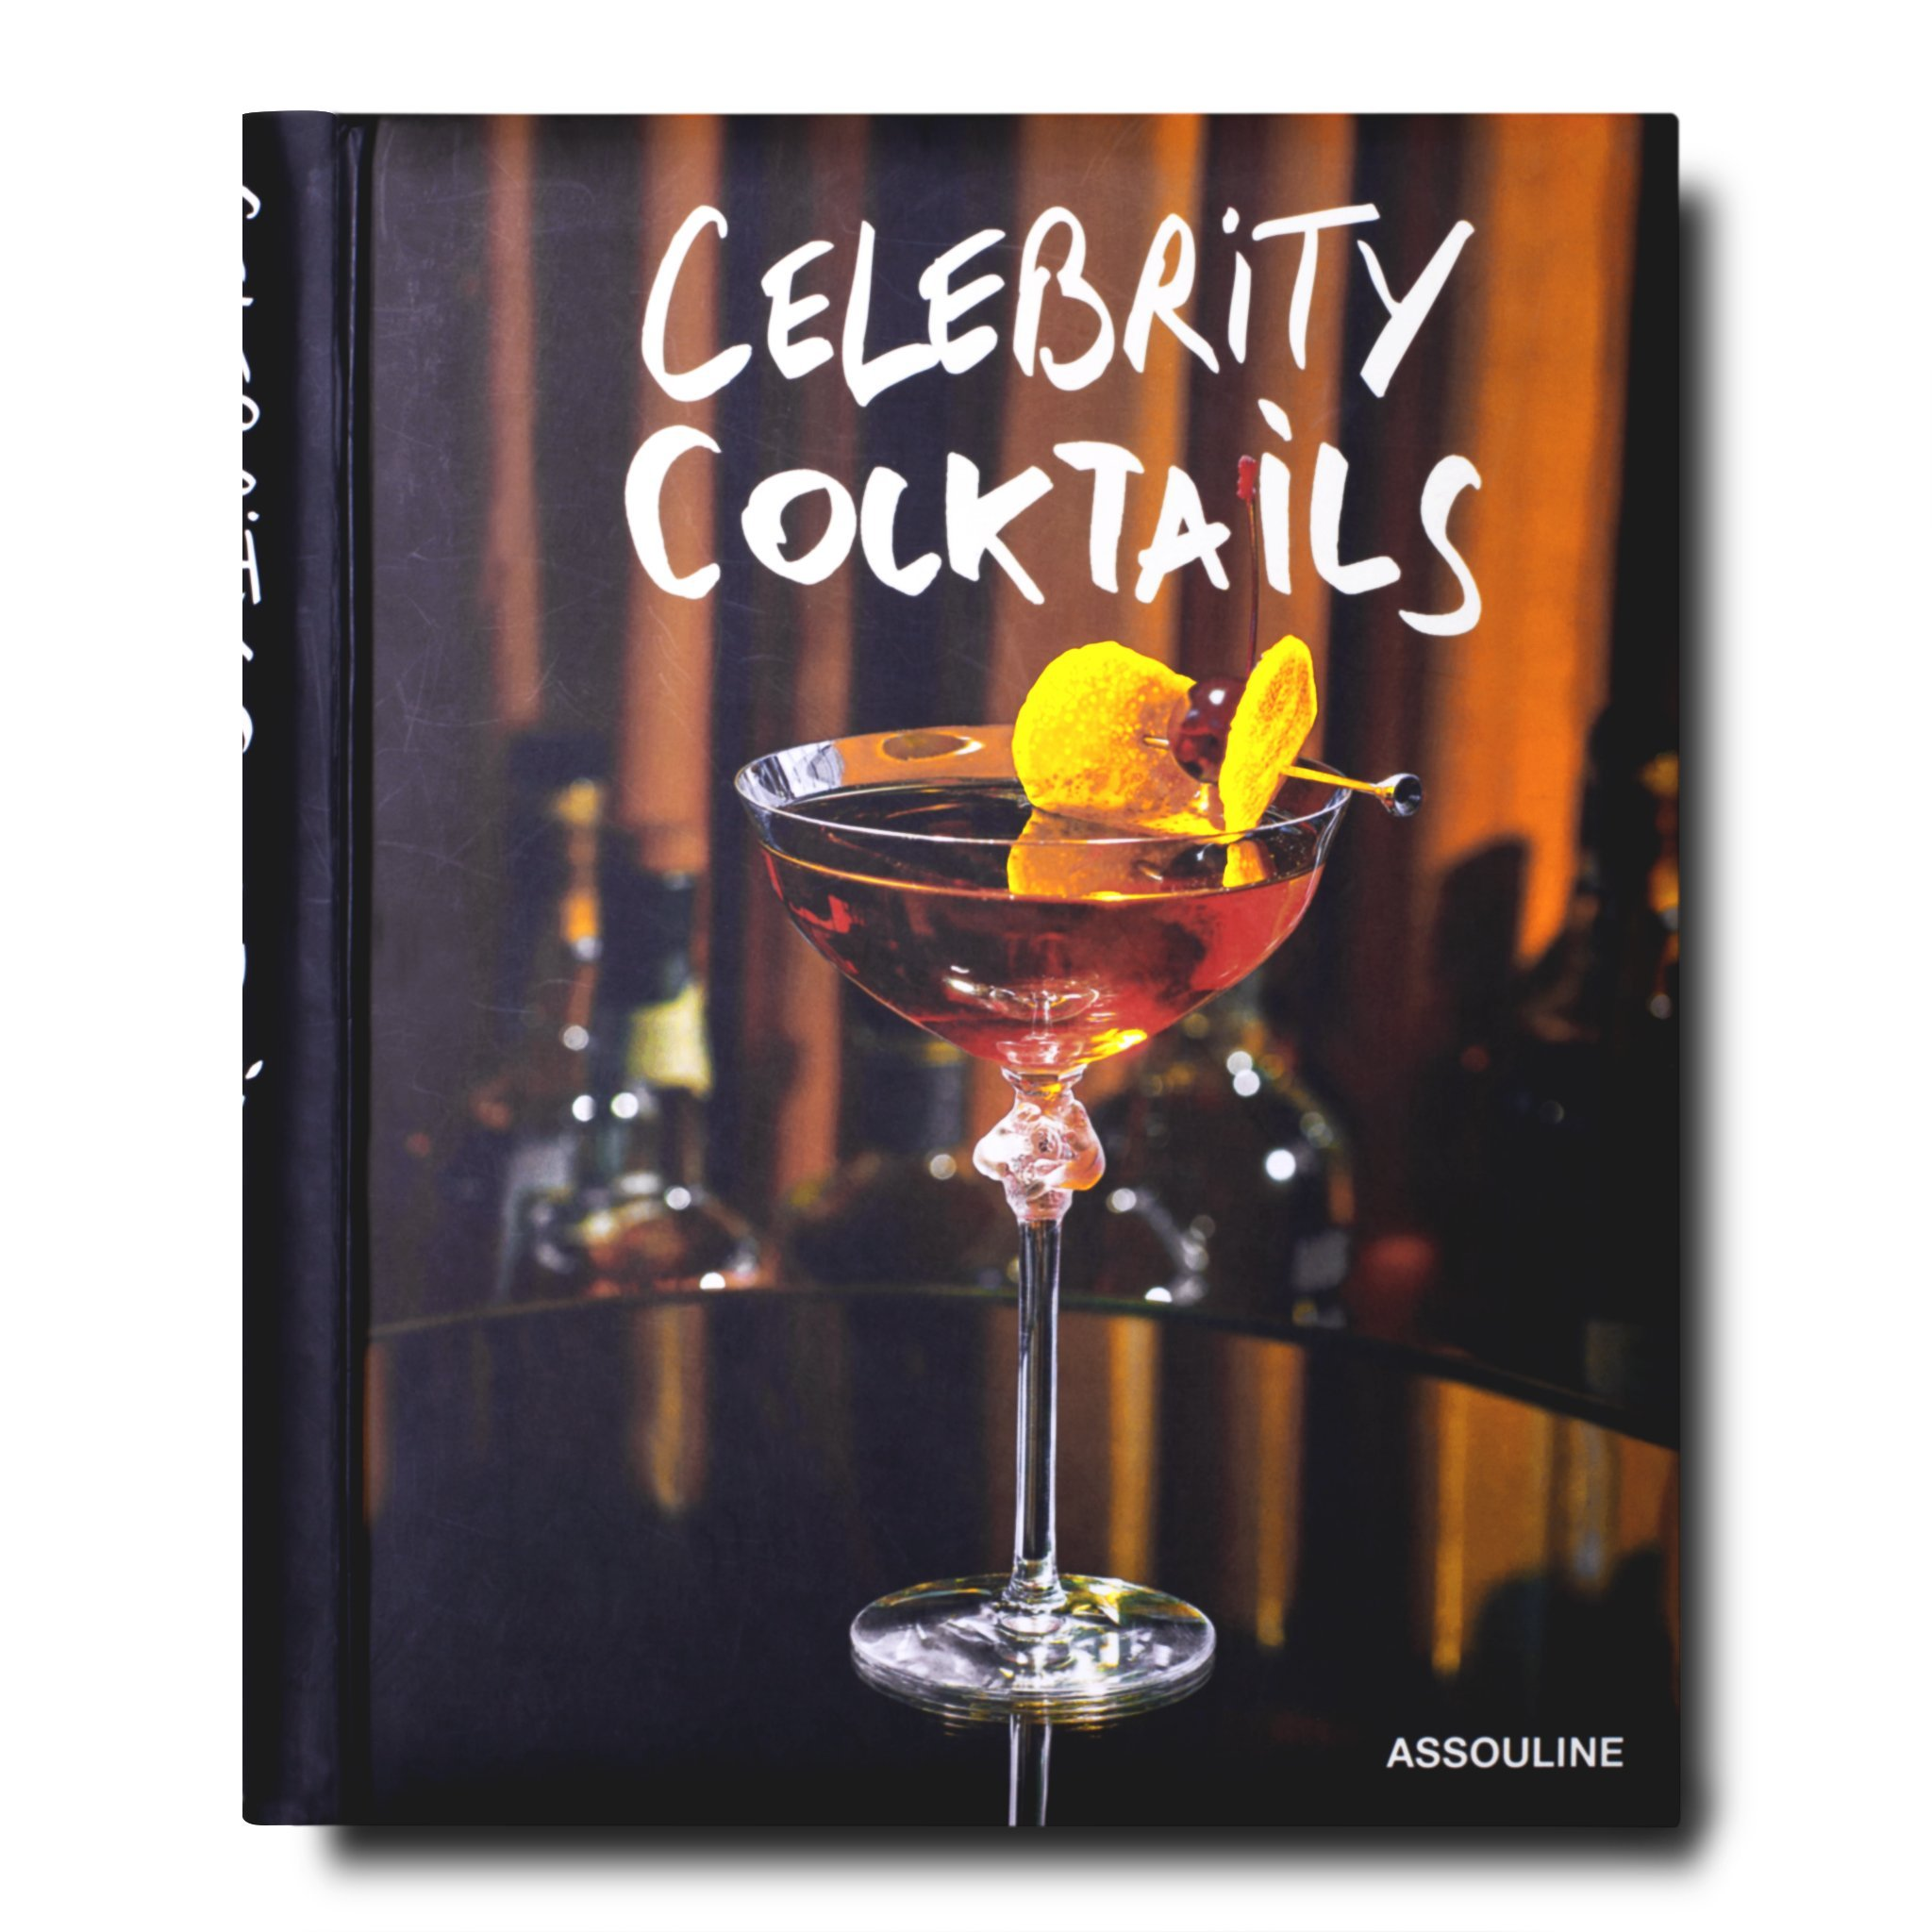 AS CELEBRITY-COCKTAILS-A_2048x.jpg